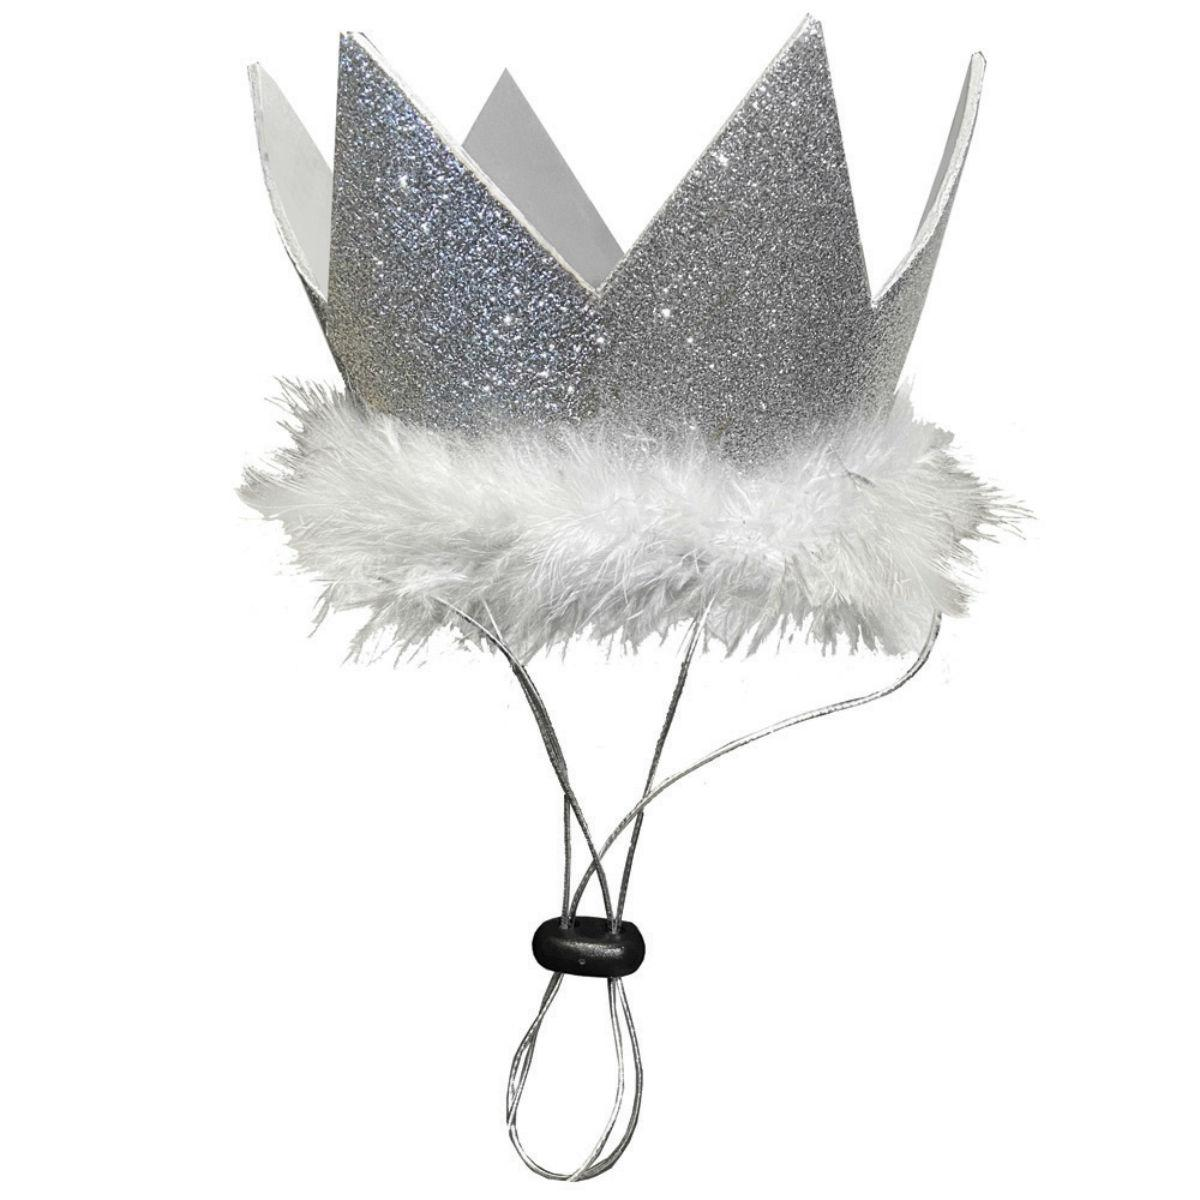 Huxley & Kent Party Crown Dog and Cat Hat - Silver